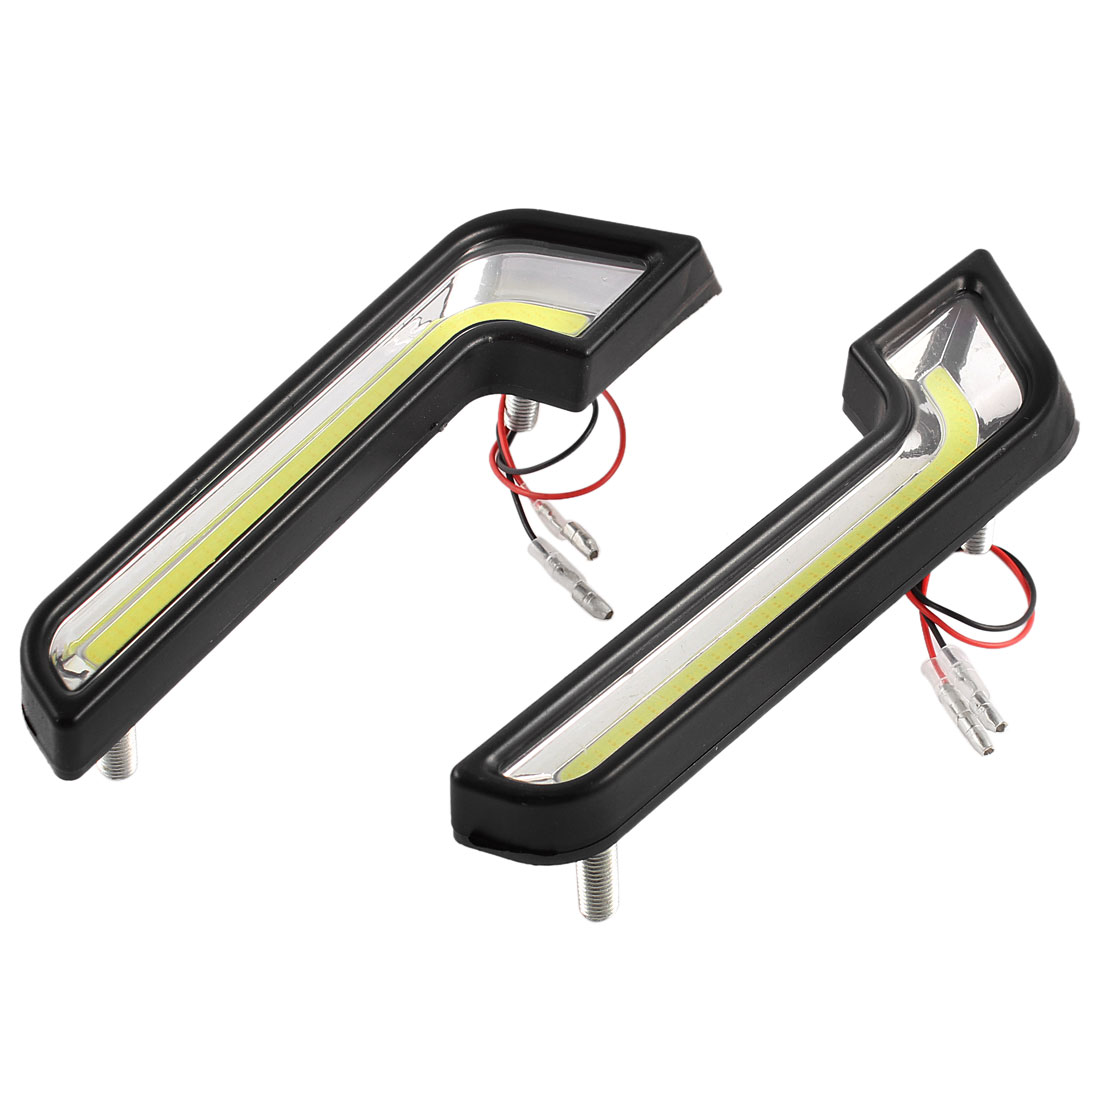 2 Pcs L Shaped Black Plastic Shell White COB LED Daytime Running Light for Car